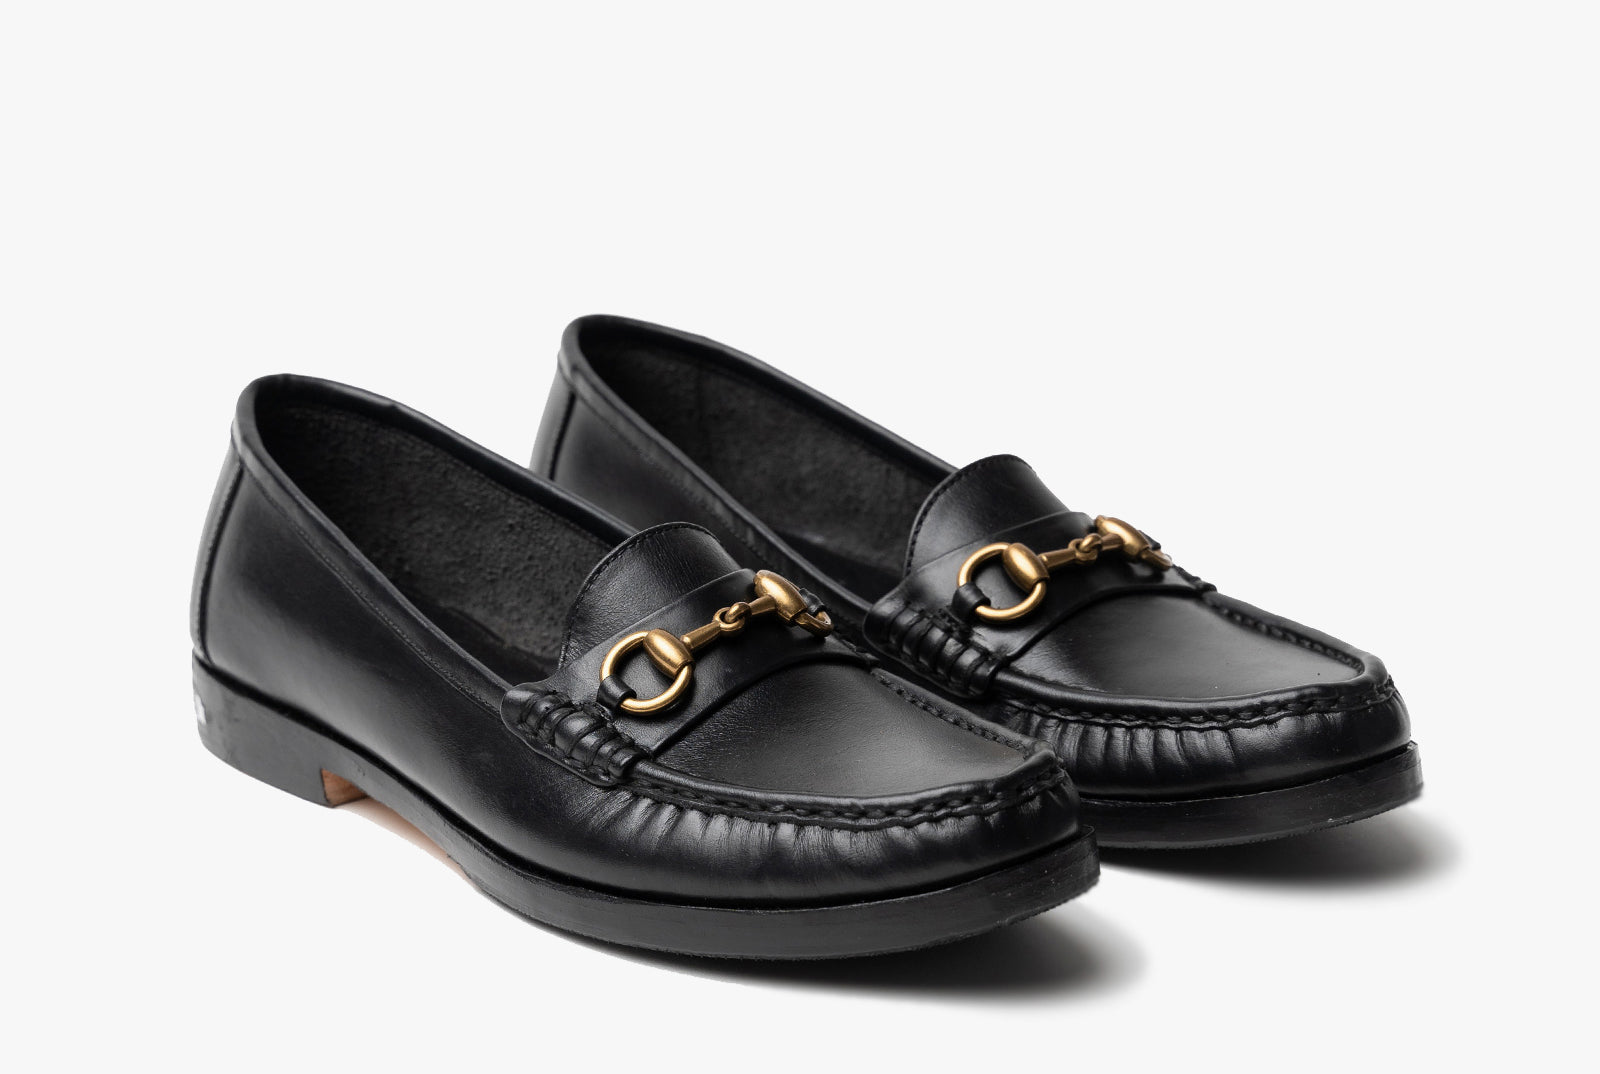 The Bonnie Horsebit Loafers - Black Noir - Marquina Shoemaker